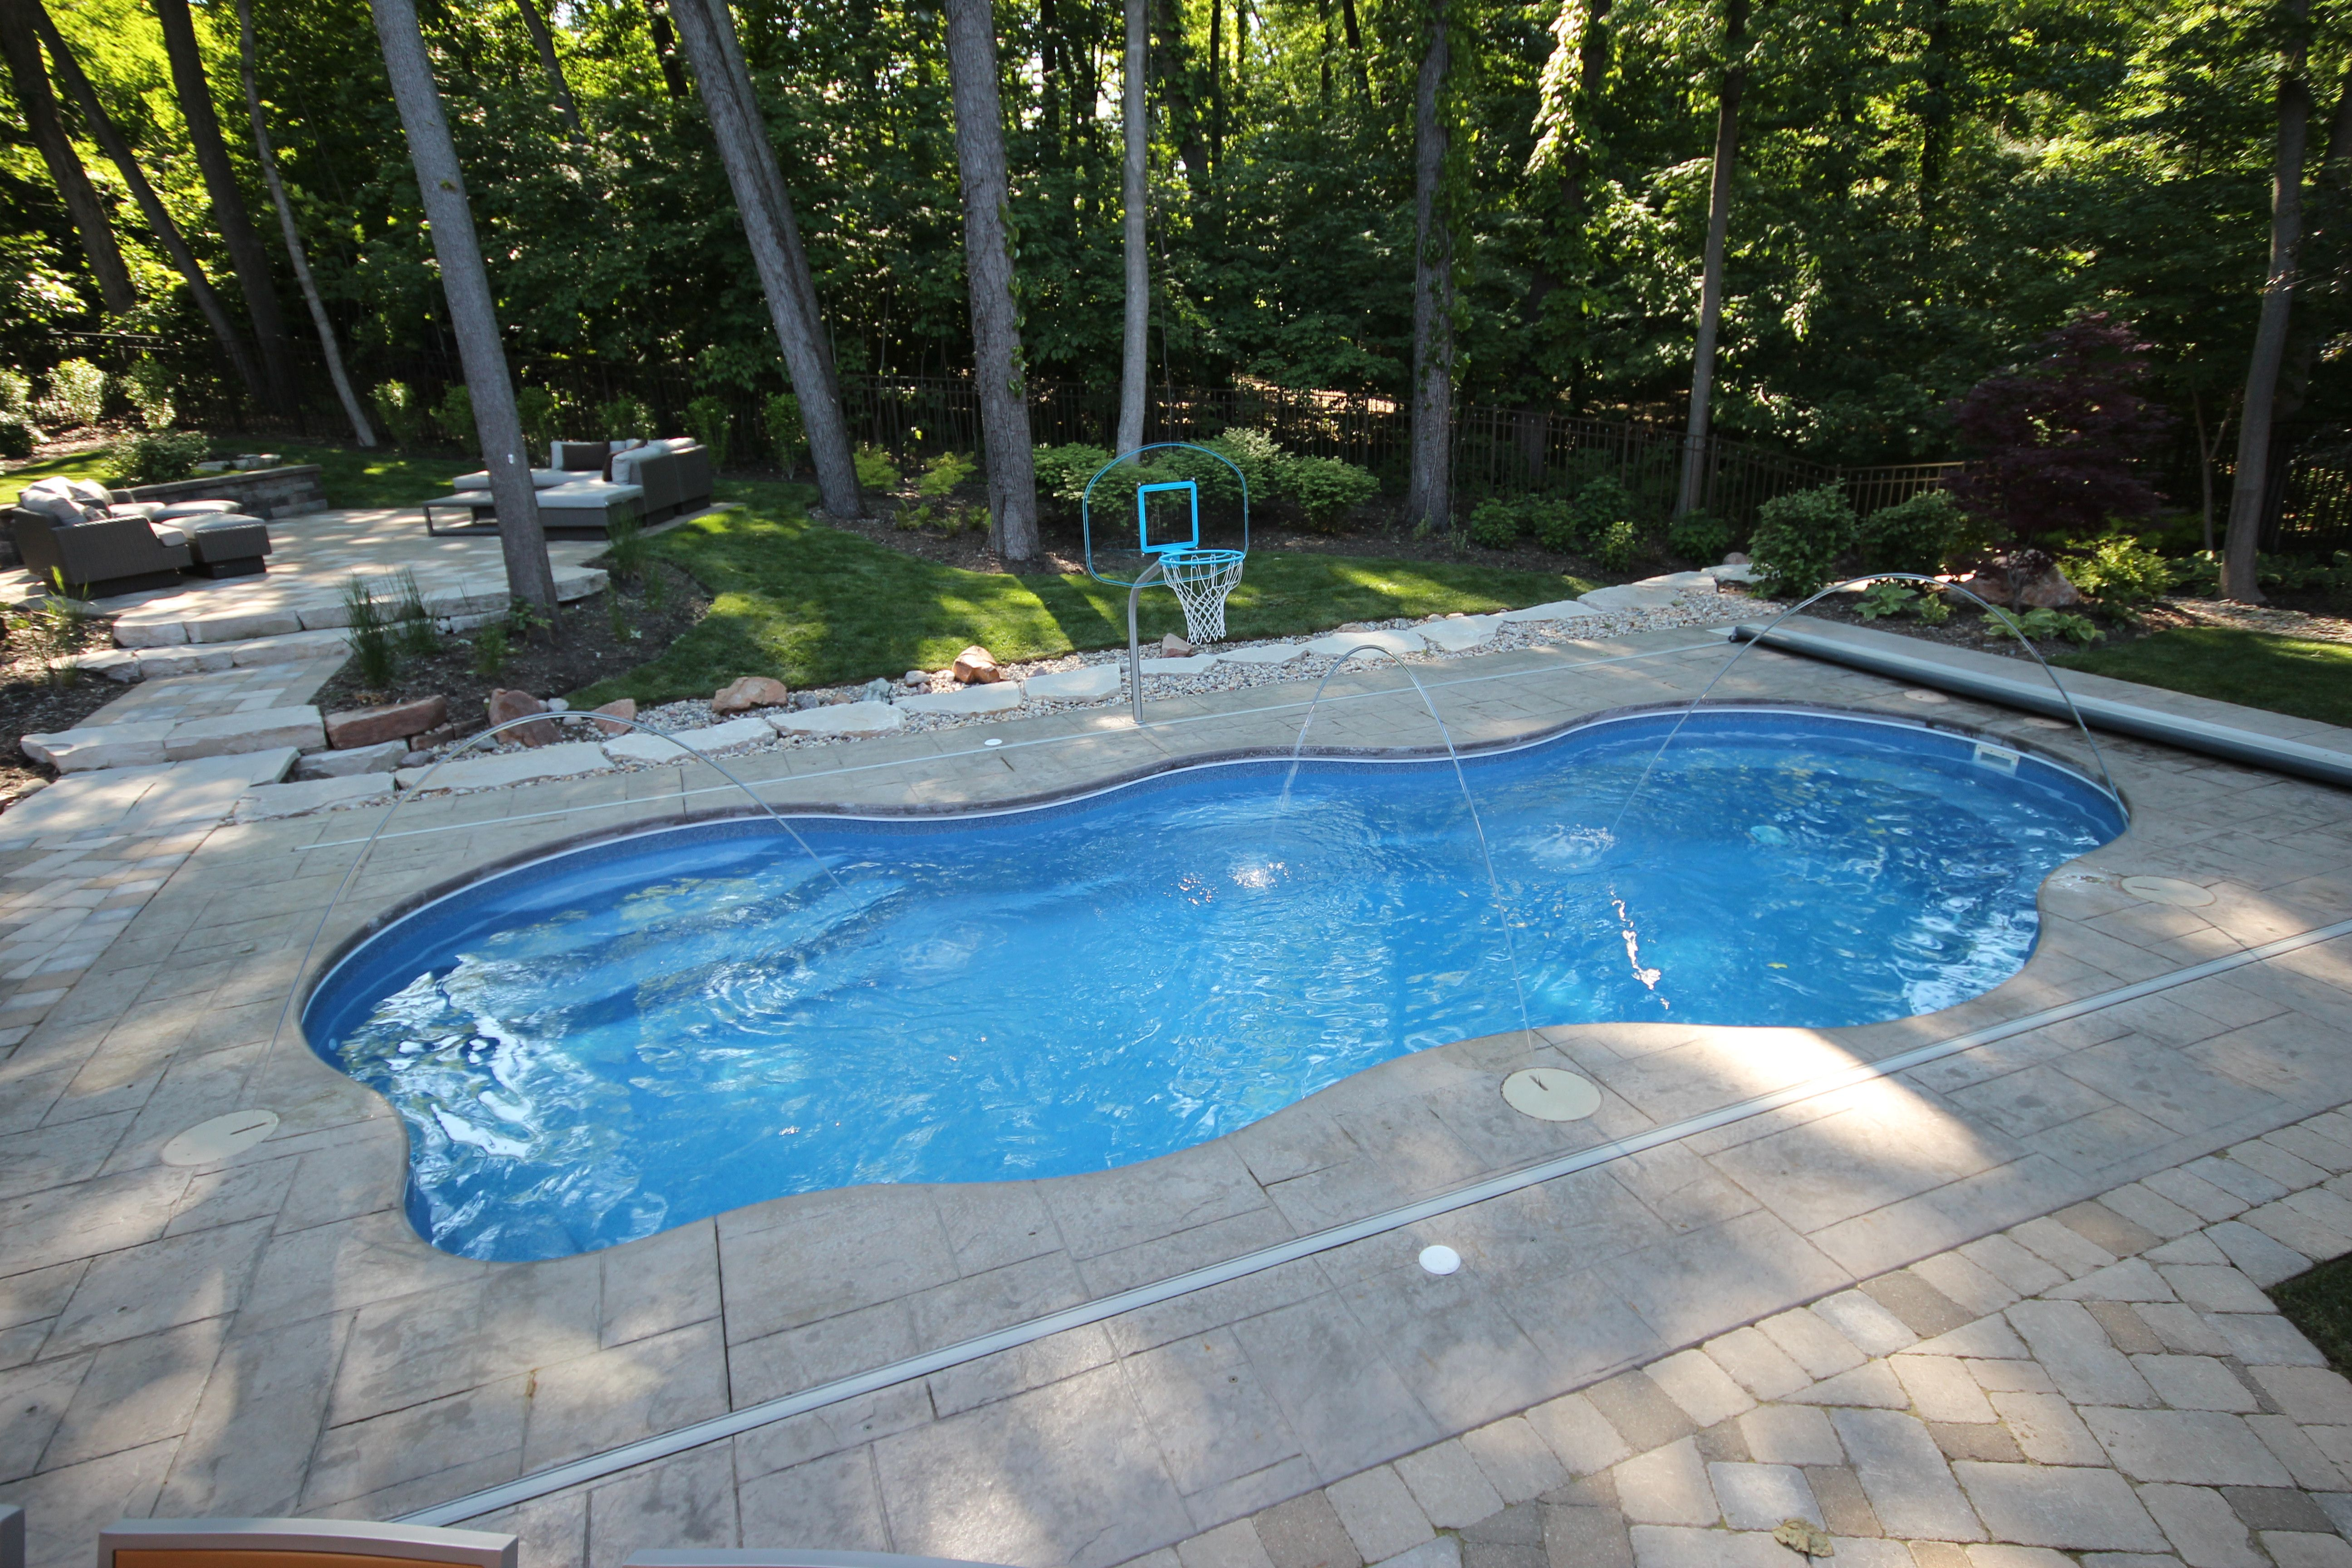 This Is A Viking Laguna With A Coverstar Automatic Pool Cover